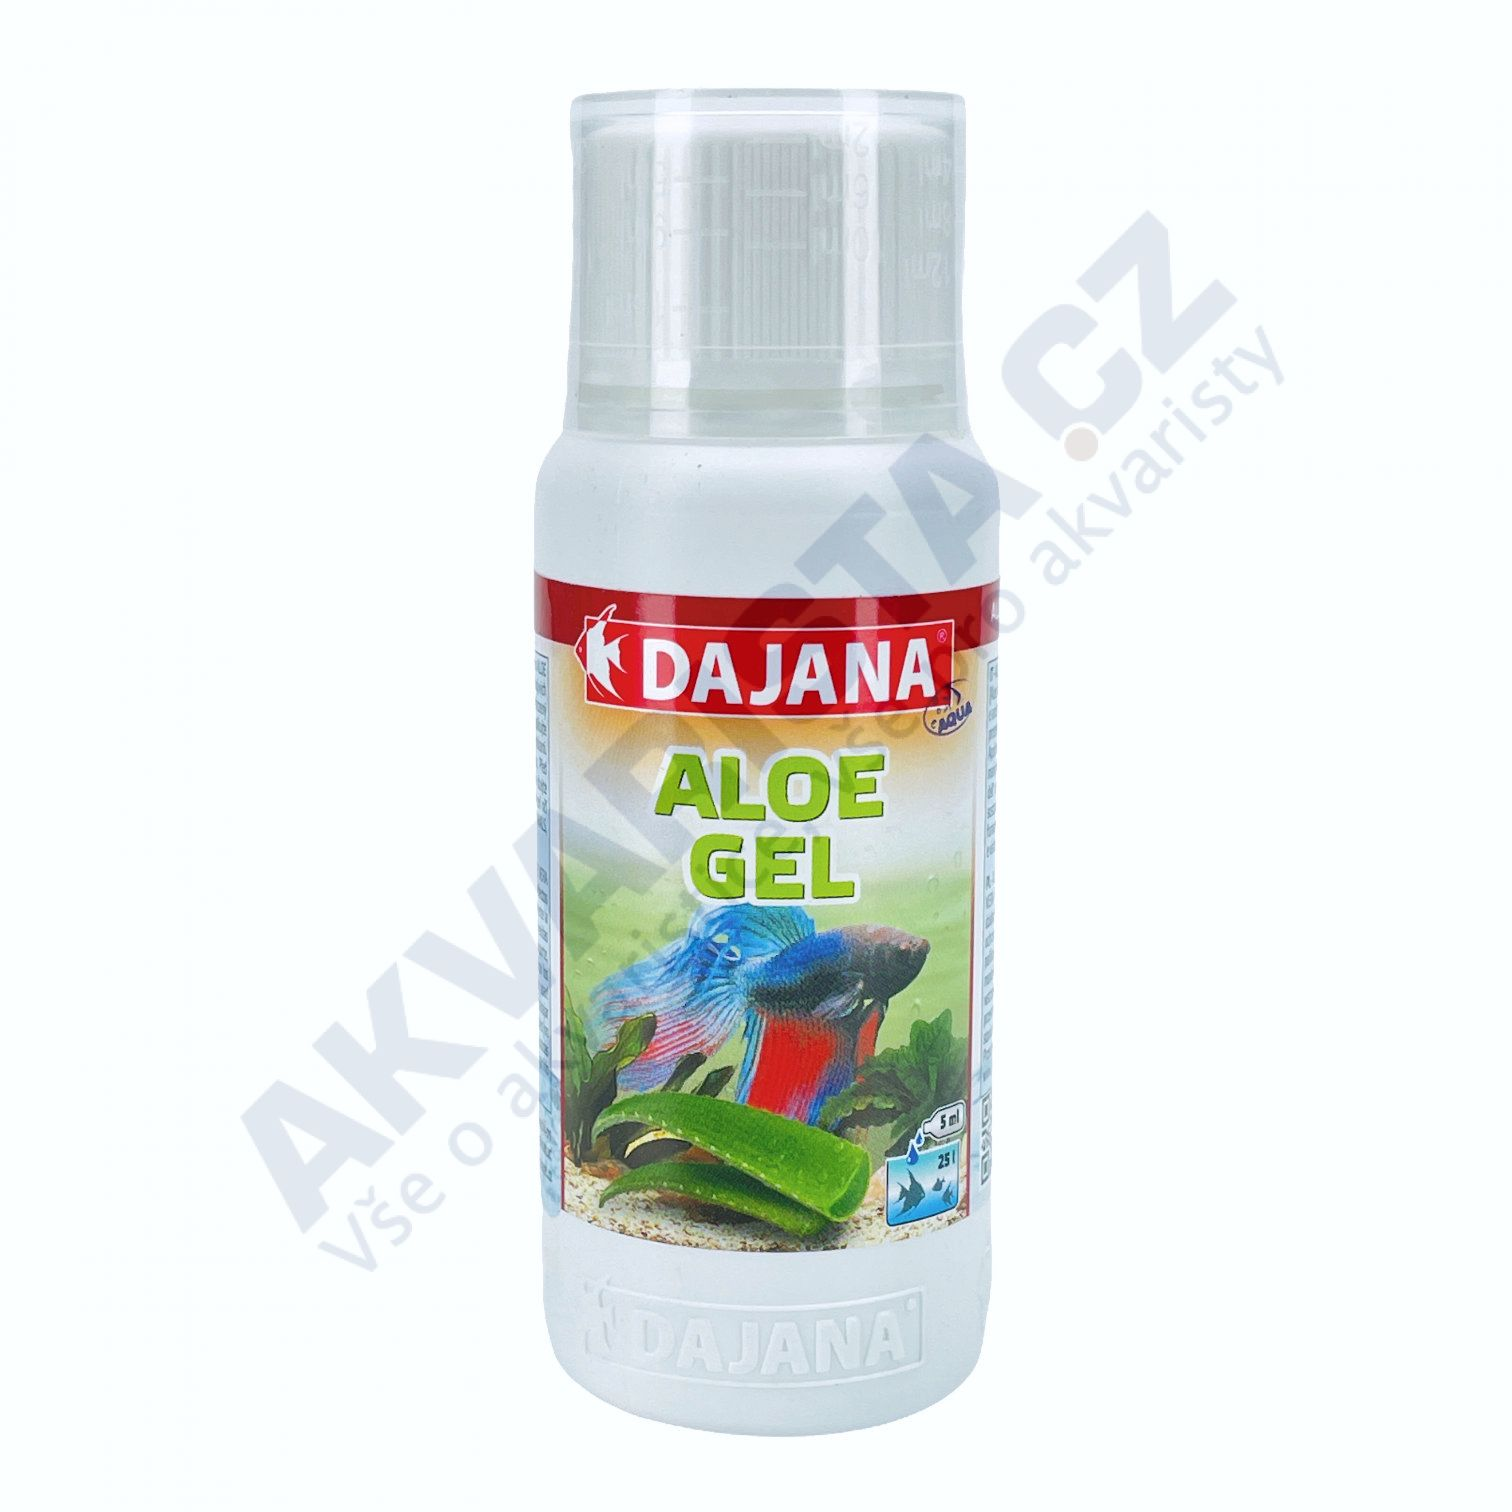 Dajana ALOE gel 100ml